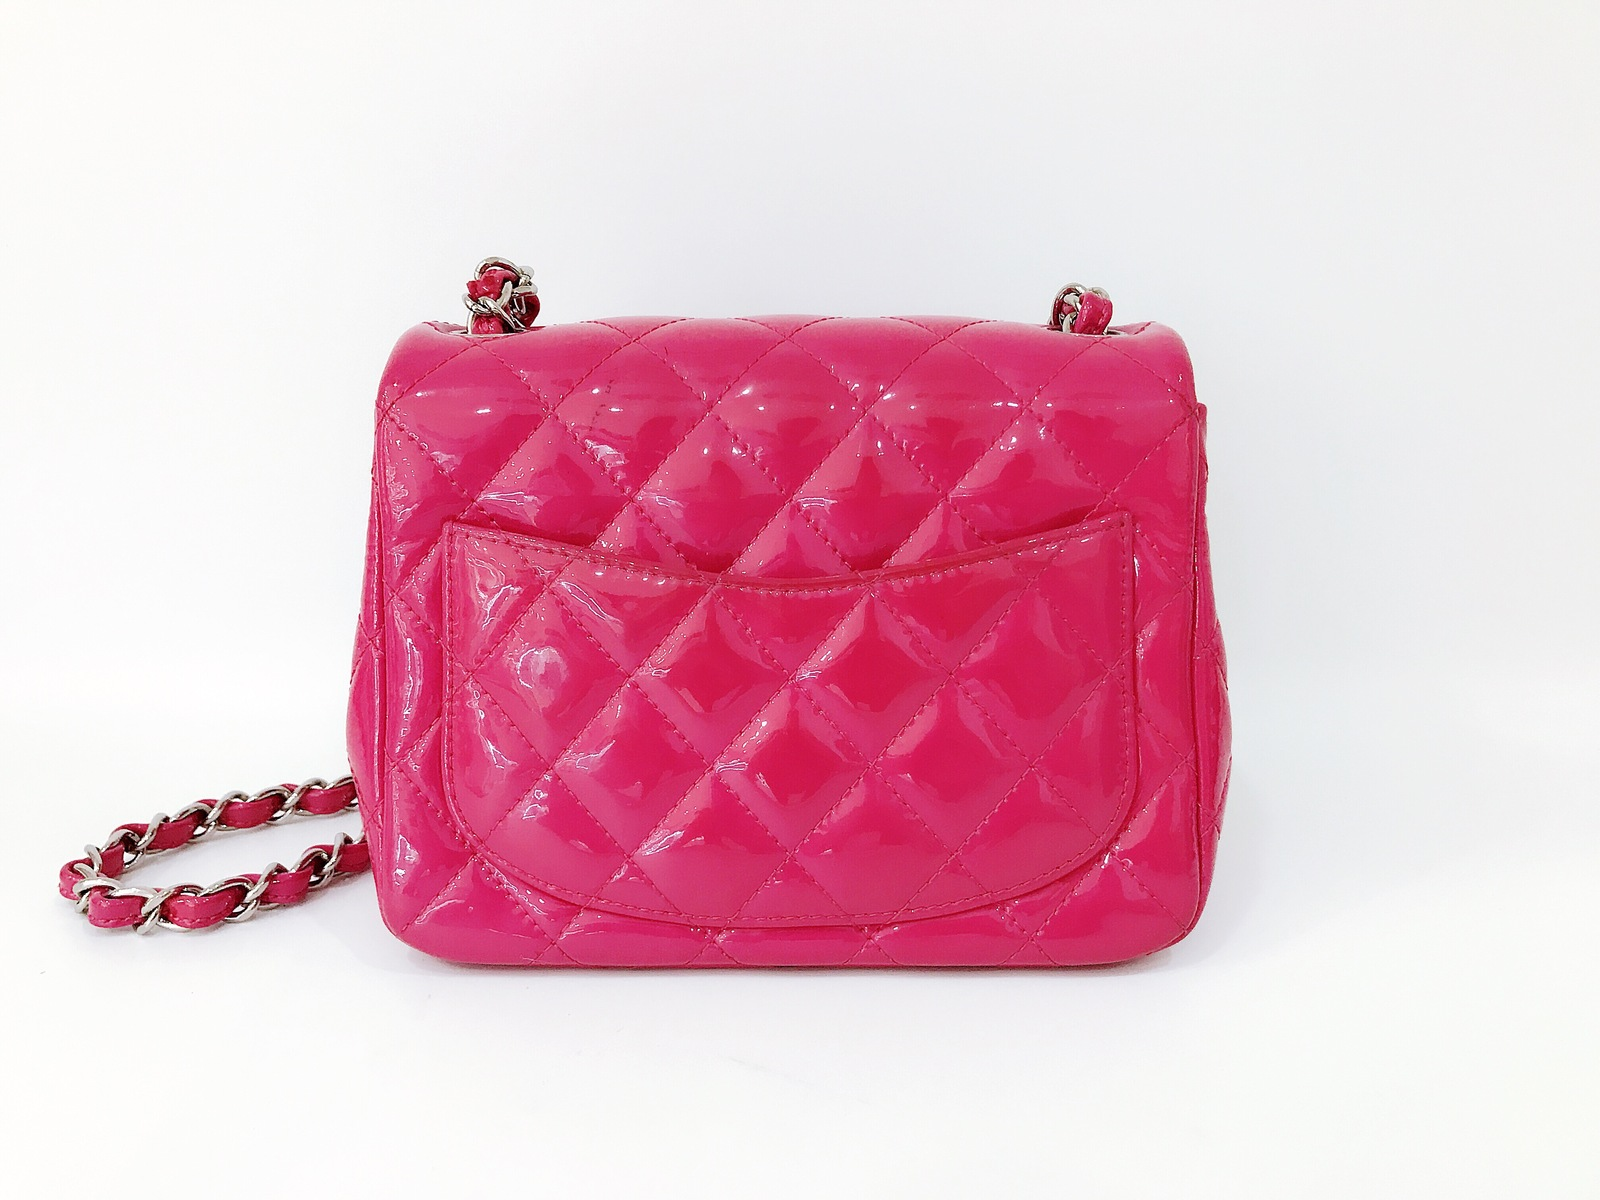 cfa9e1c08531 Authentic Chanel Pink Quilted Patent Leather and 40 similar items